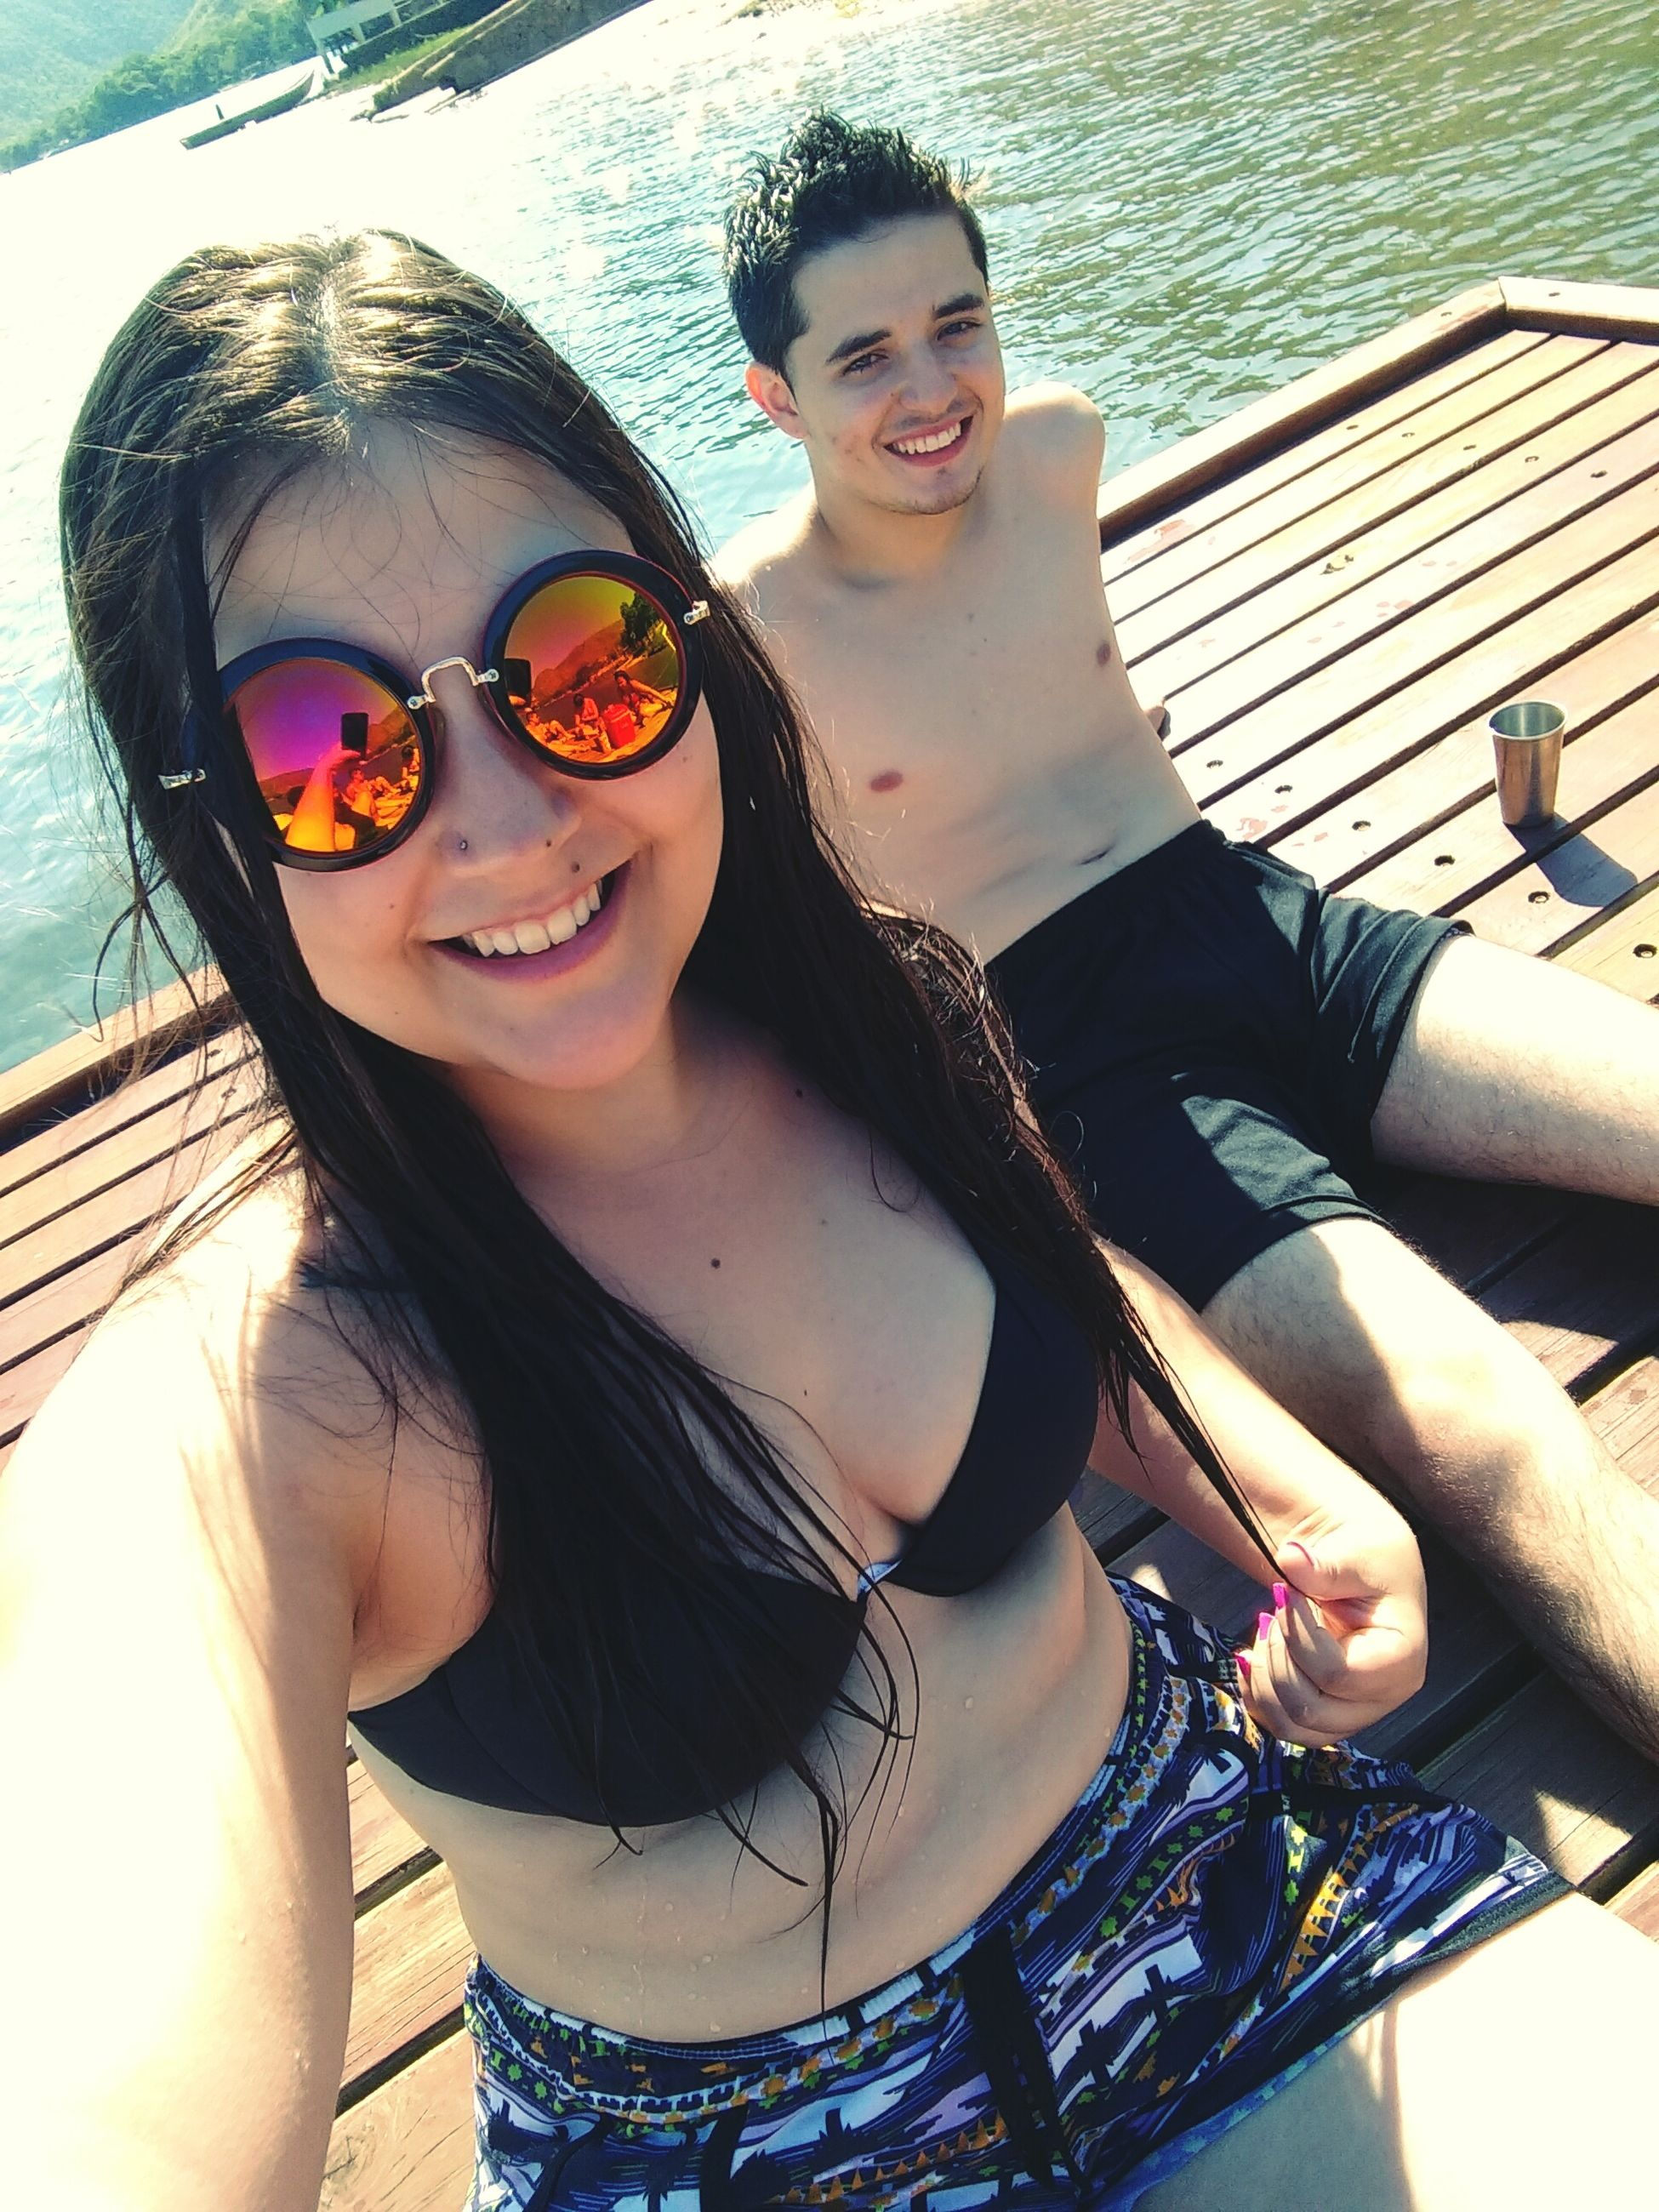 sunglasses, looking at camera, smiling, portrait, happiness, cheerful, selfie, togetherness, friendship, enjoyment, young adult, beautiful people, confidence, adults only, day, young women, people, adult, only women, outdoors, beautiful woman, beach, close-up